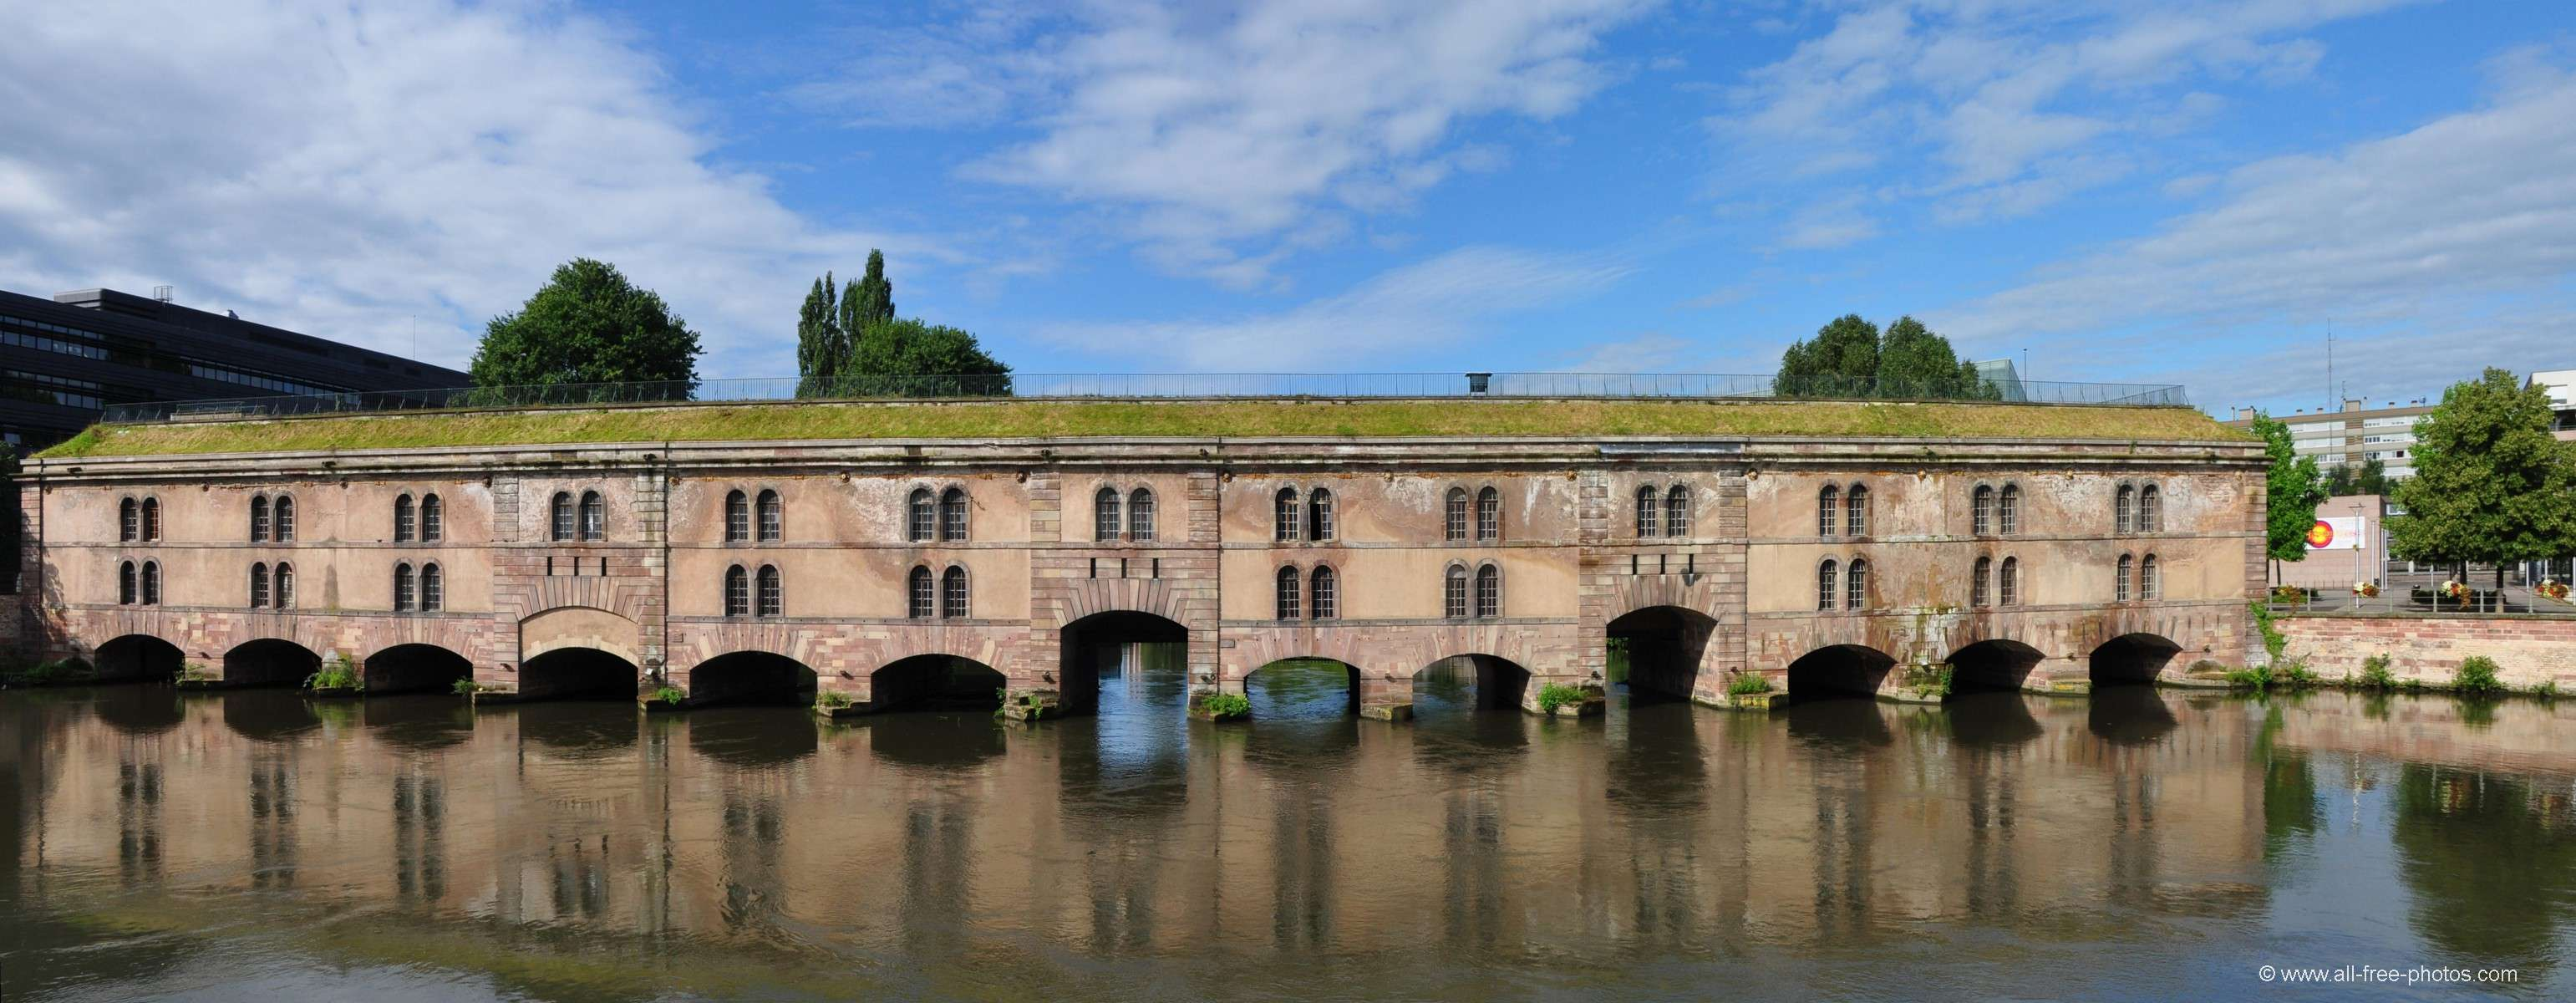 The Vauban's dam - Strasbourg - France